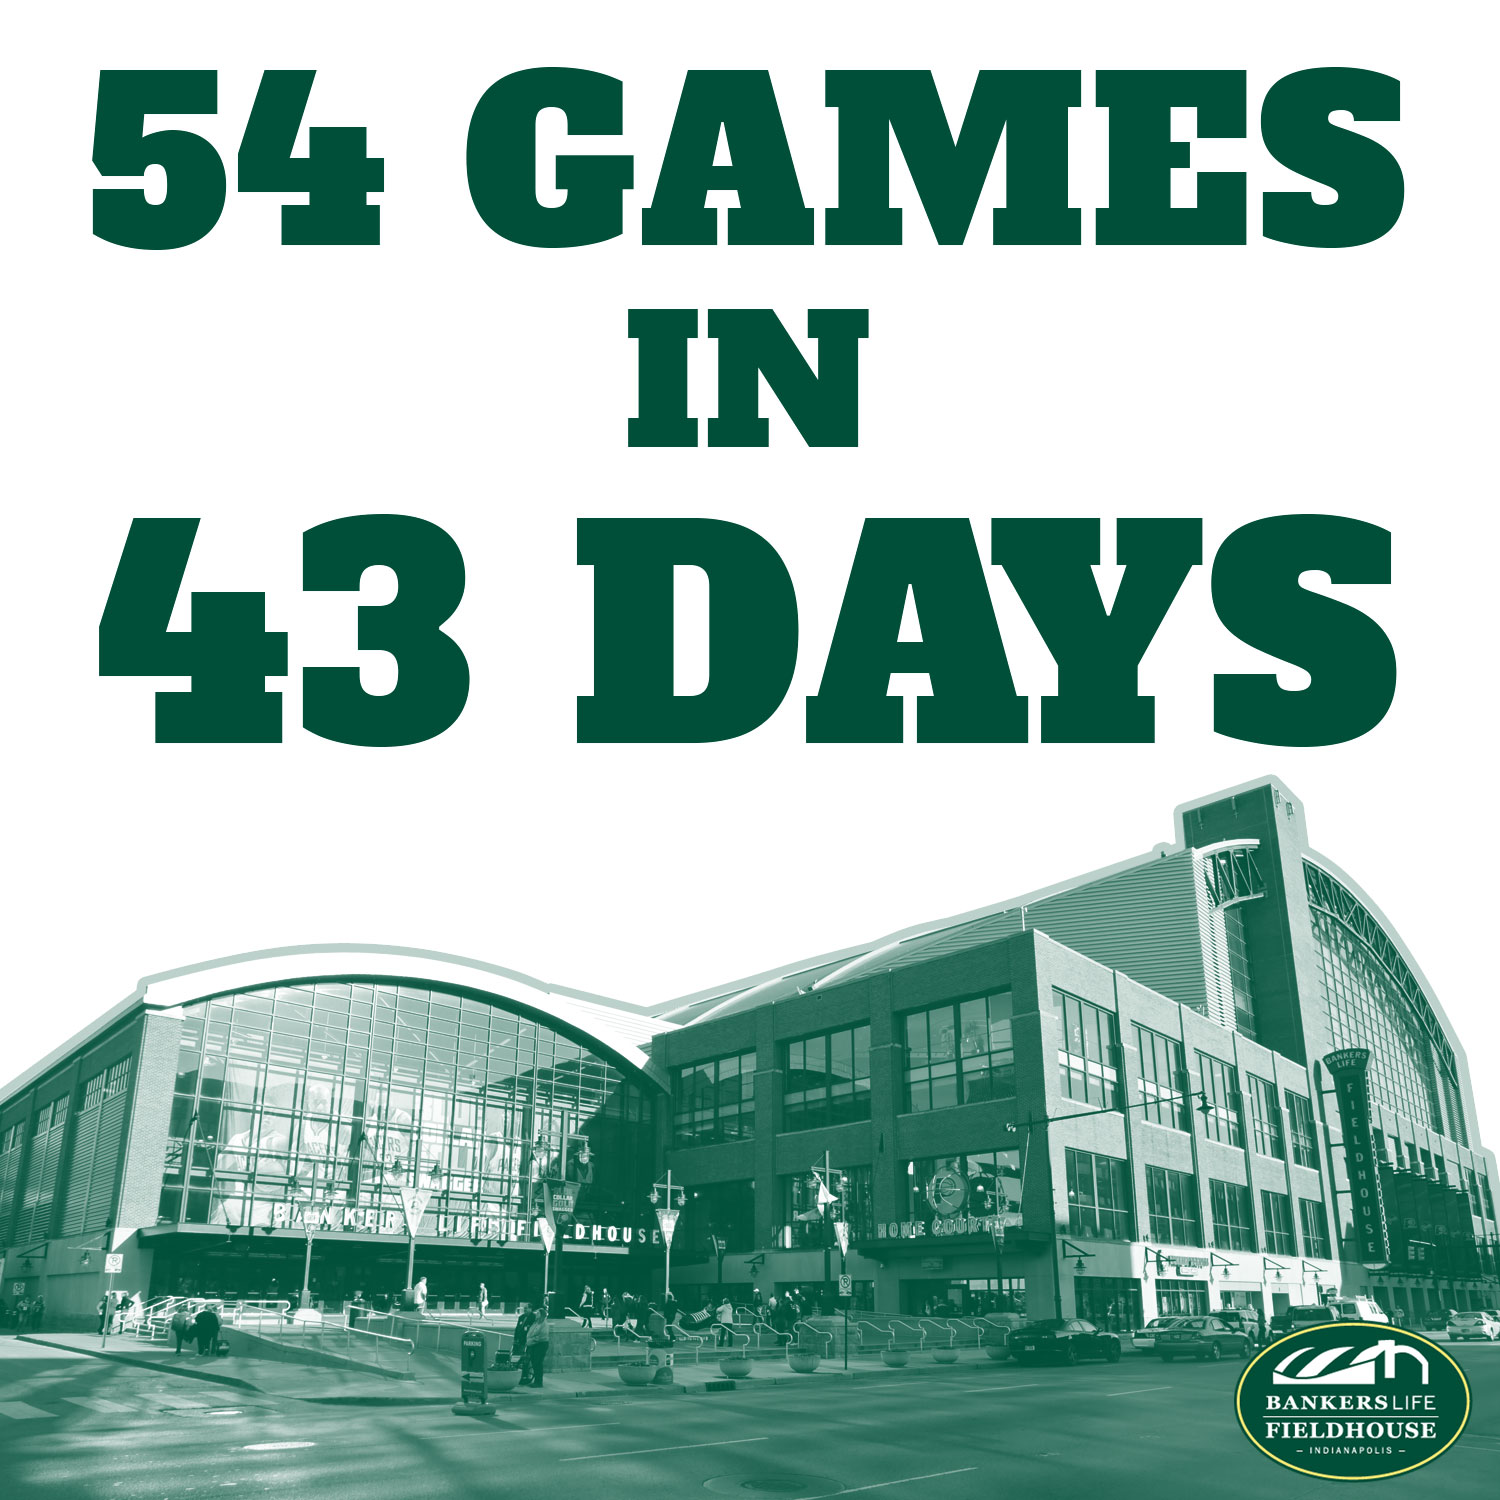 54 Games in 43 Days